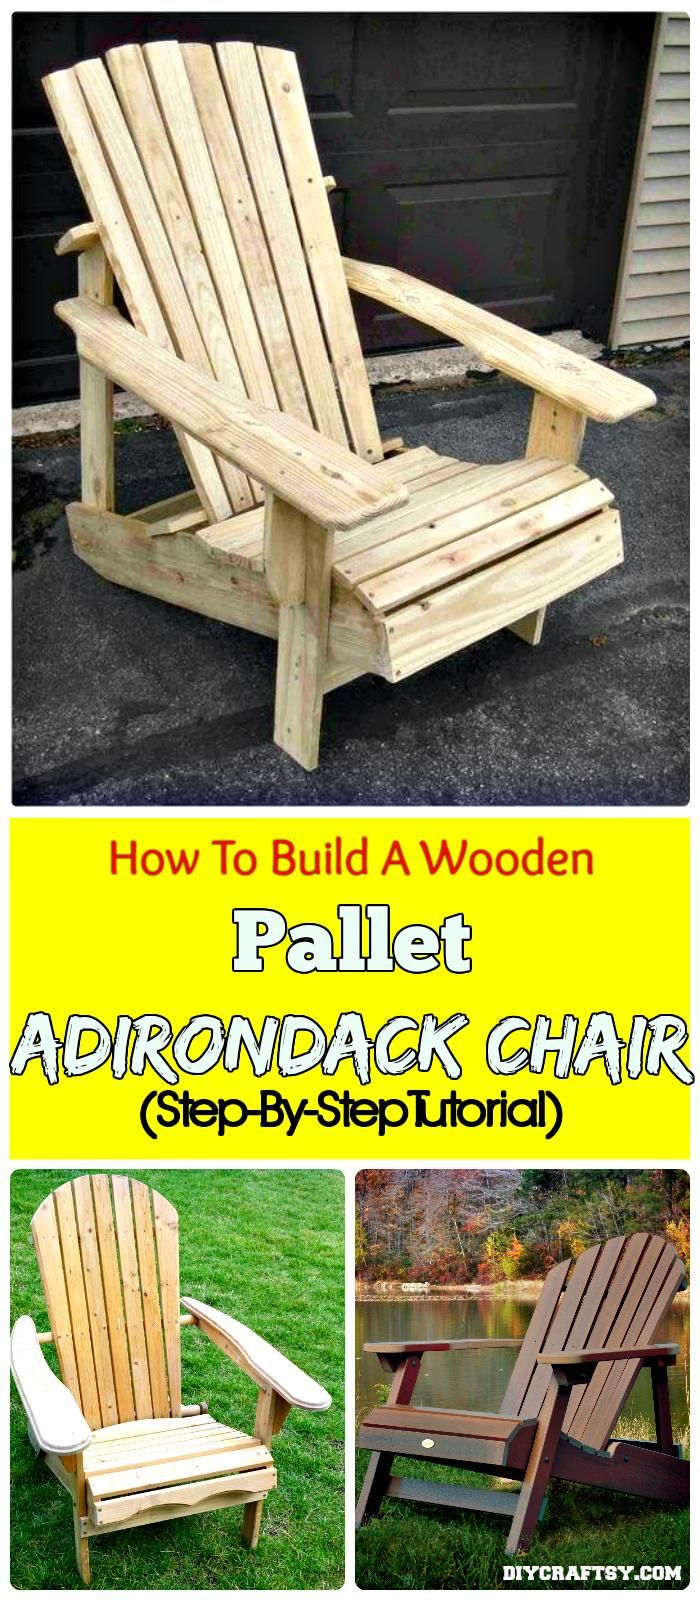 How To Build A Wooden Pallet Adirondack Chair (Step-By-Step Tutorial) - 150 Best DIY Pallet Projects and Pallet Furniture Crafts - Page 30 of 75 - DIY & Crafts